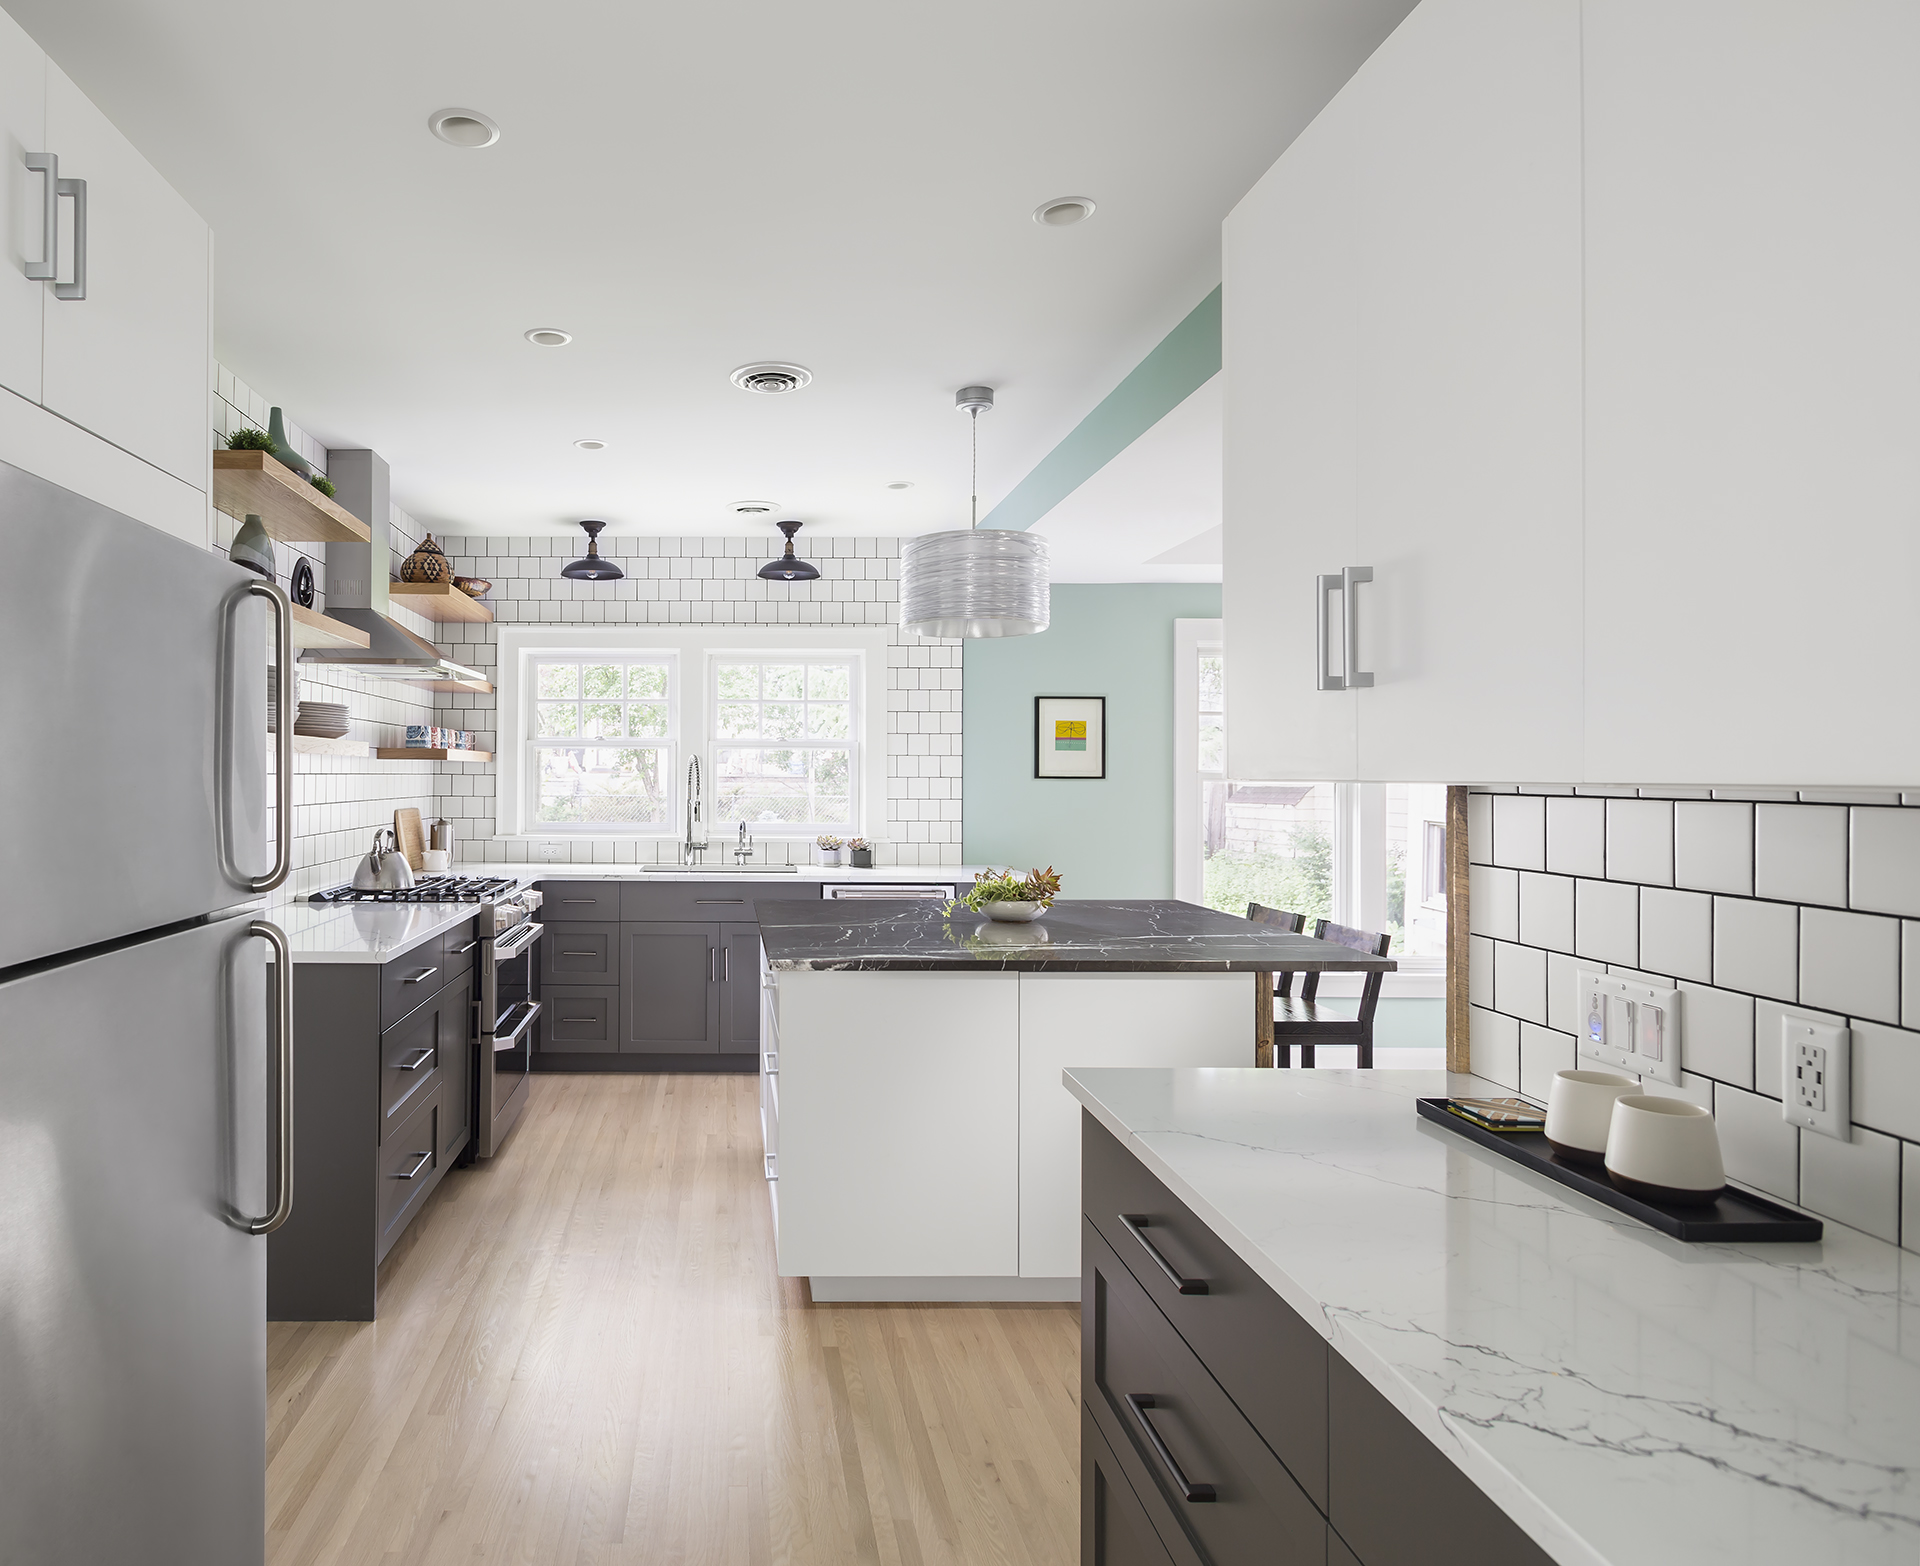 Kitchen_Full_2018_06_11.jpg